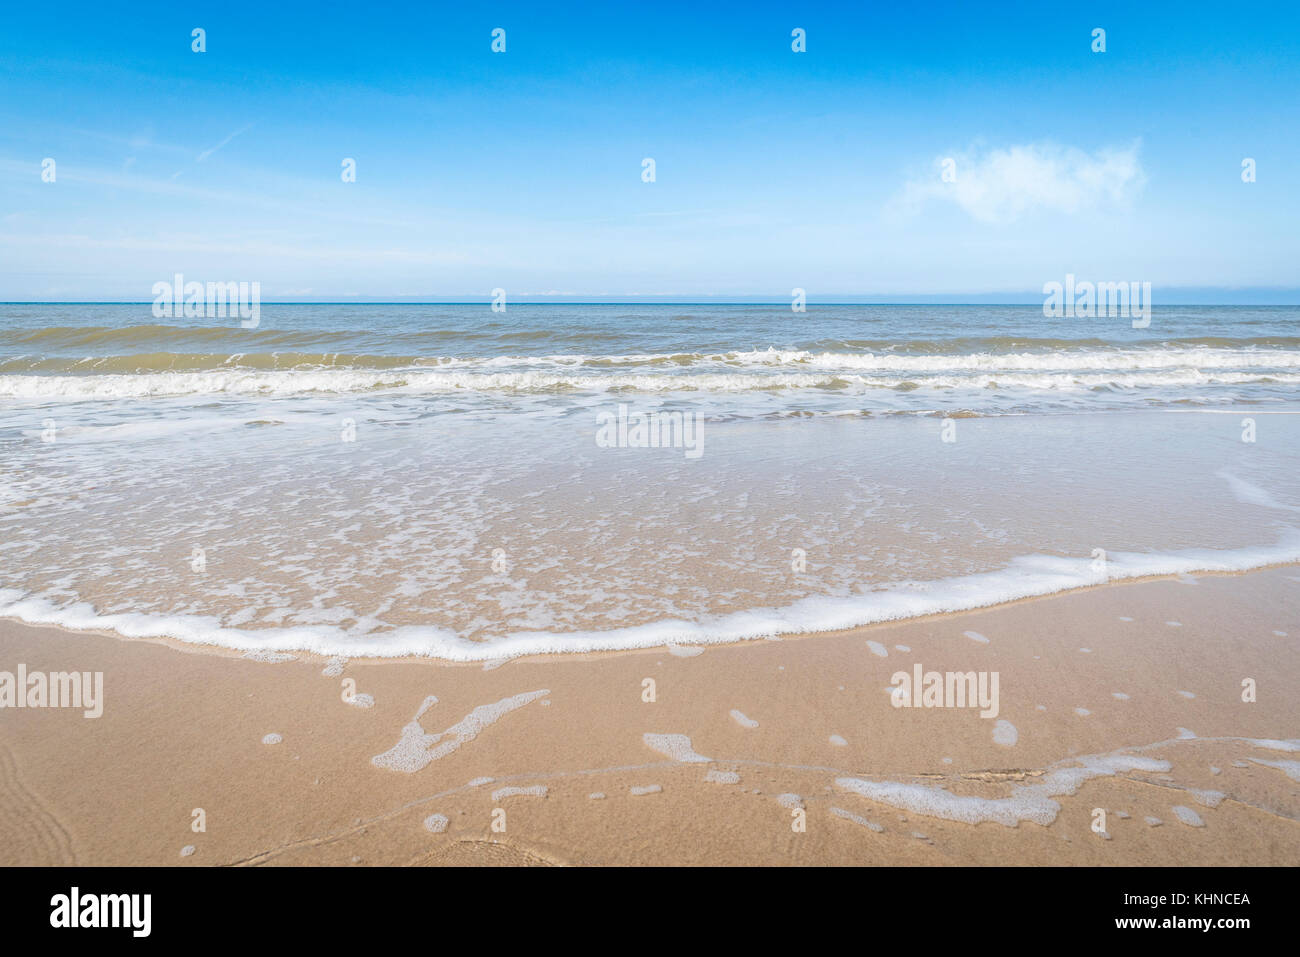 Waves coming in on a Scandinavian beach in the summer under a blue sky with a white cloud - Stock Image